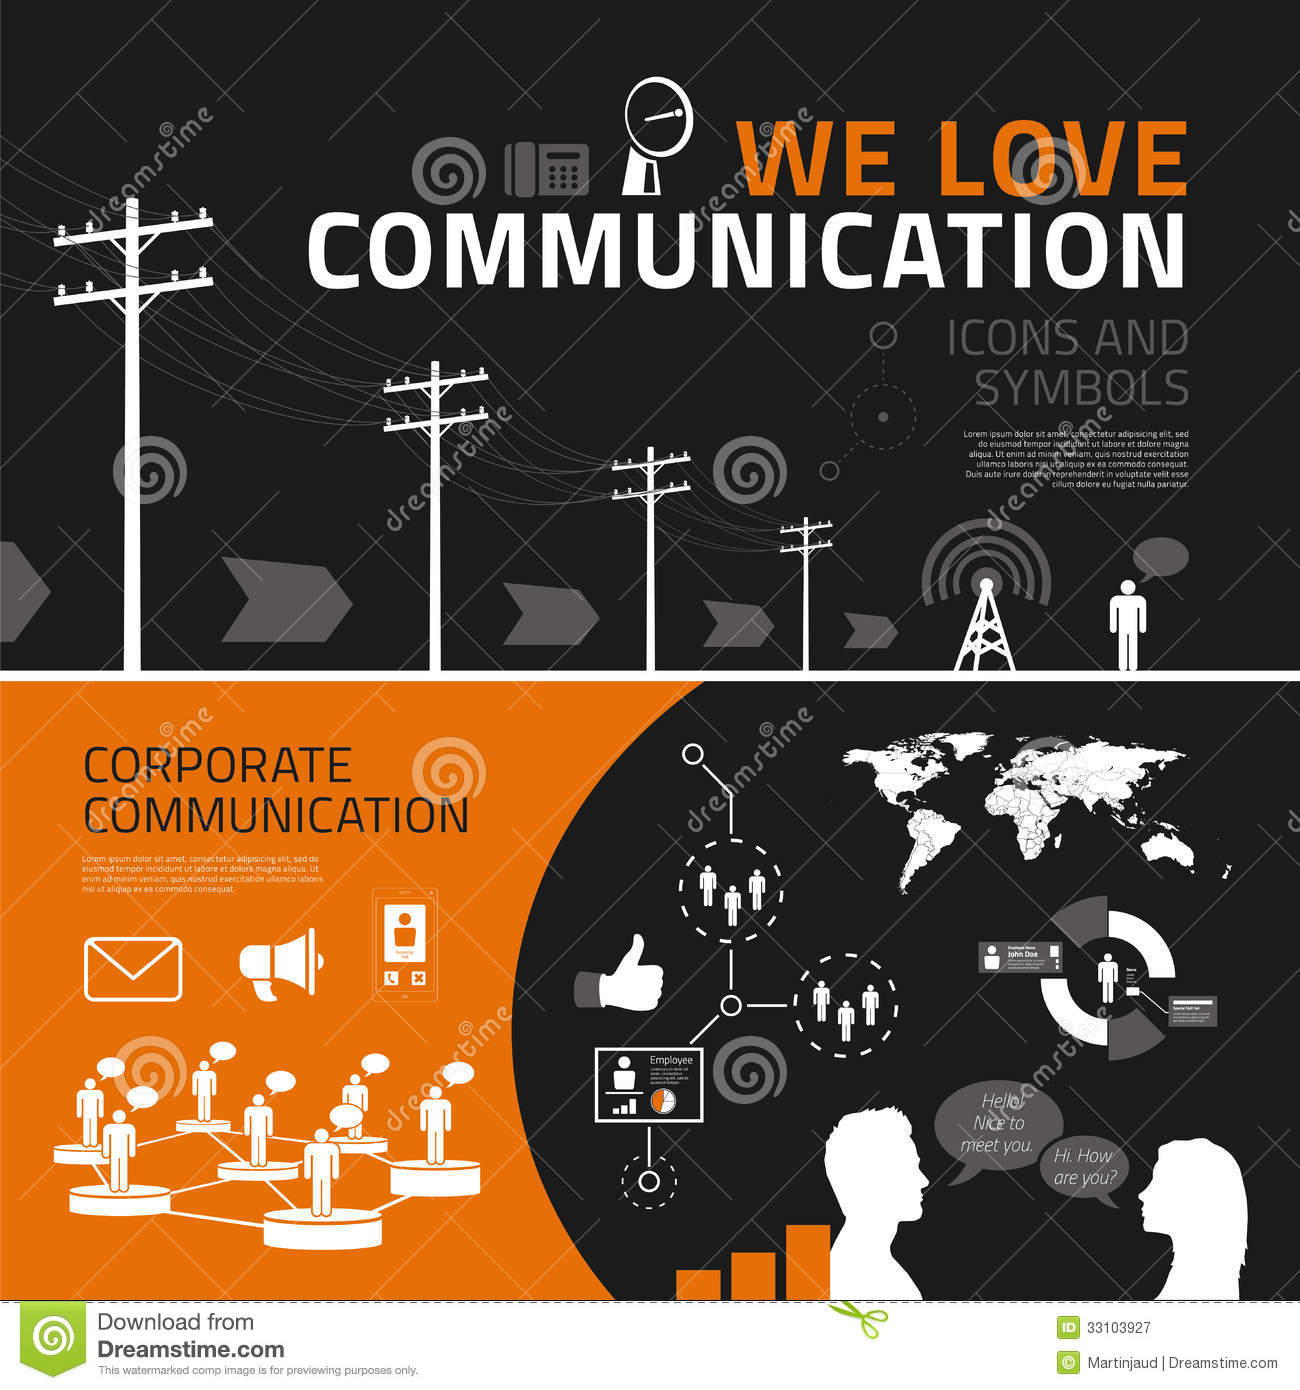 telephone pole diagram oven heating element wiring communication infographics elements, icons and symbols royalty free stock photography - image ...